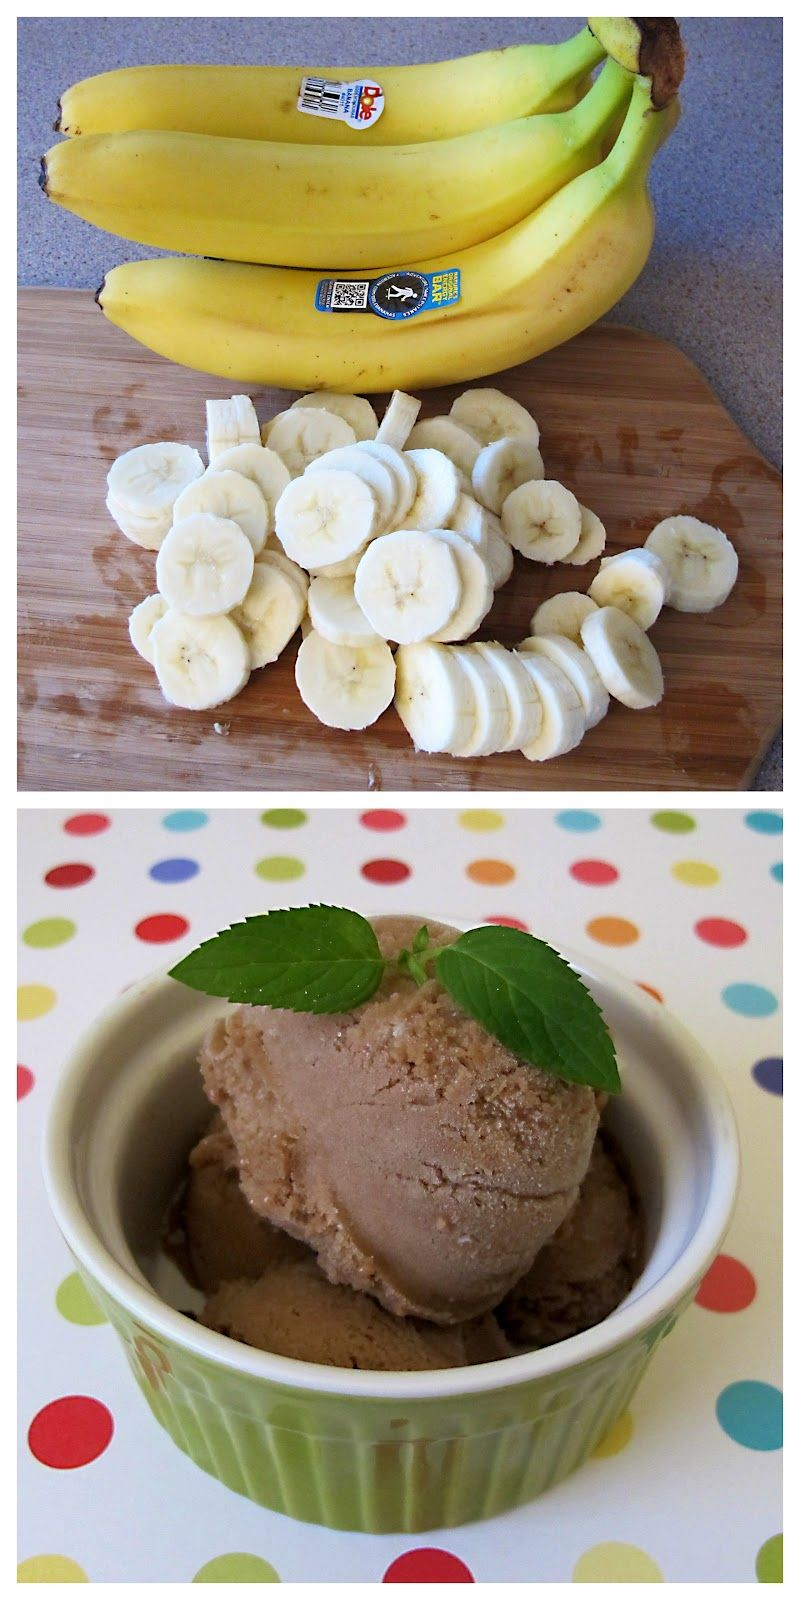 Ice cream made of only bananas ive tried this and it is amazing recipes ice cream made of only bananas ive tried this and it is amazing ccuart Images